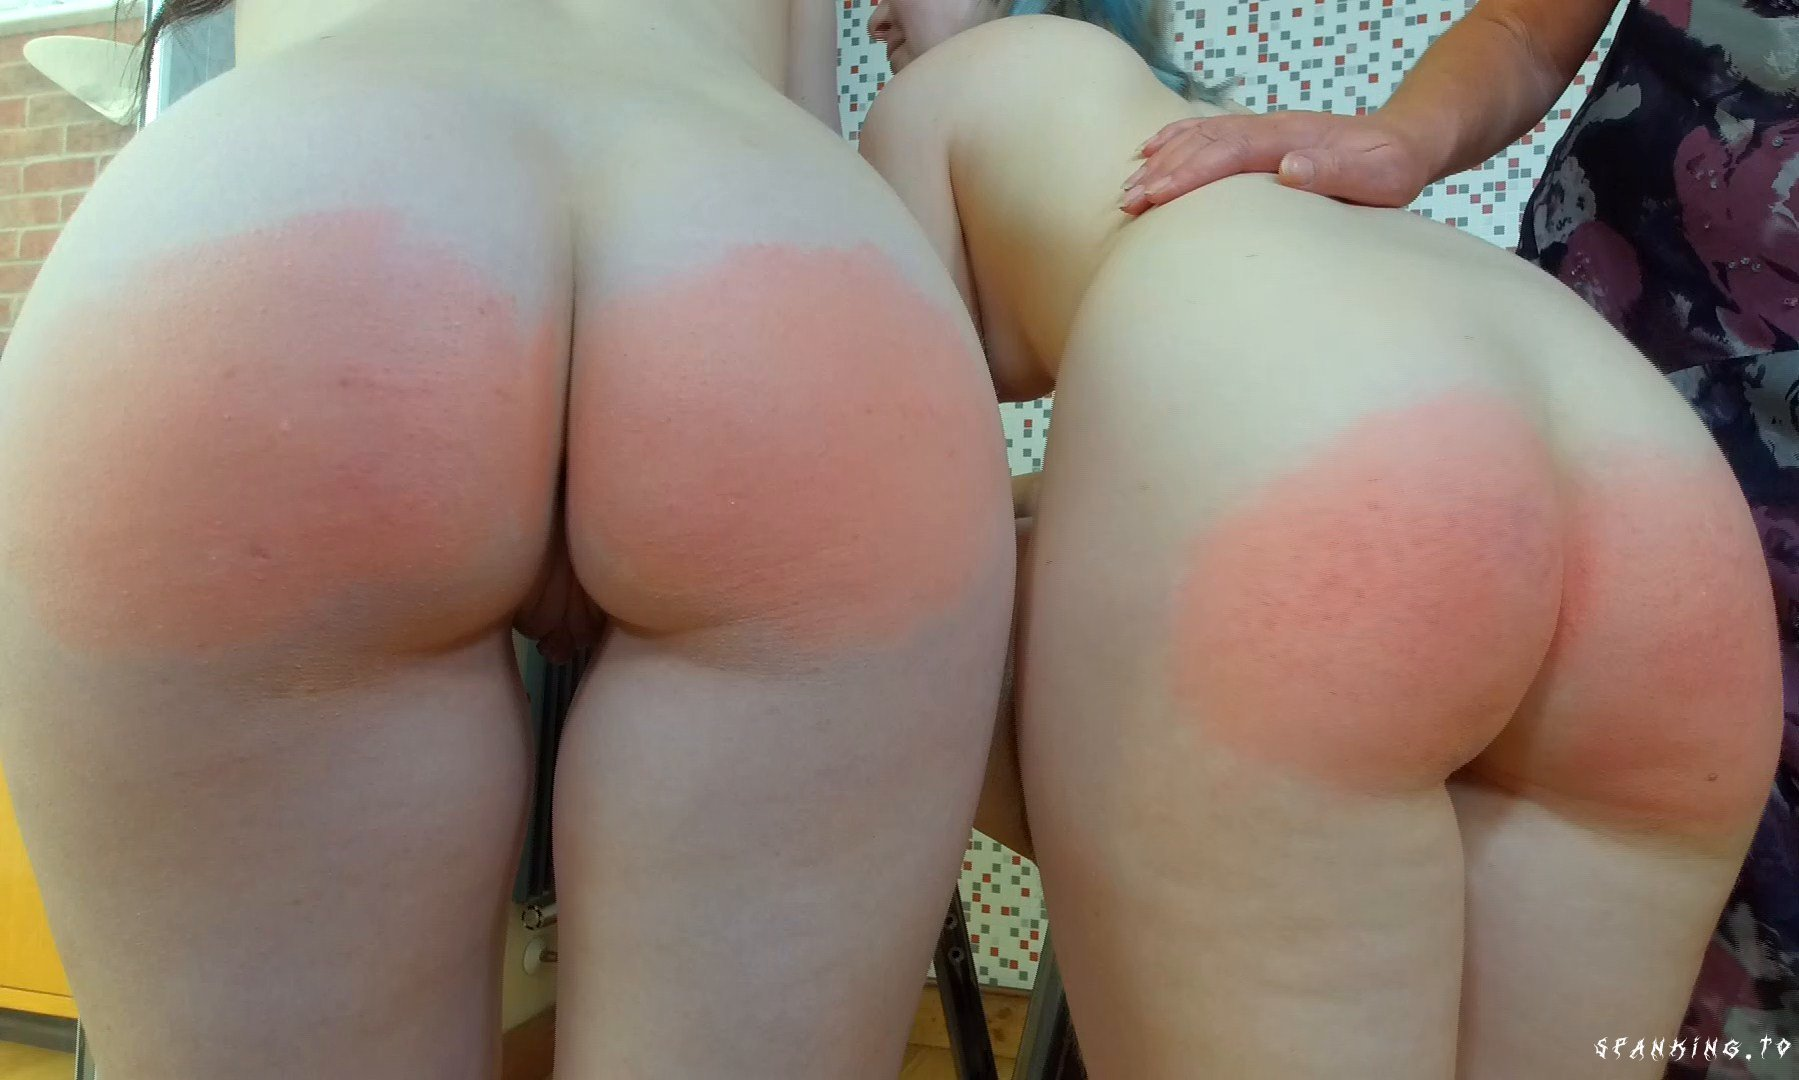 The House Of Correction 2 - English-Spankers - Full HD